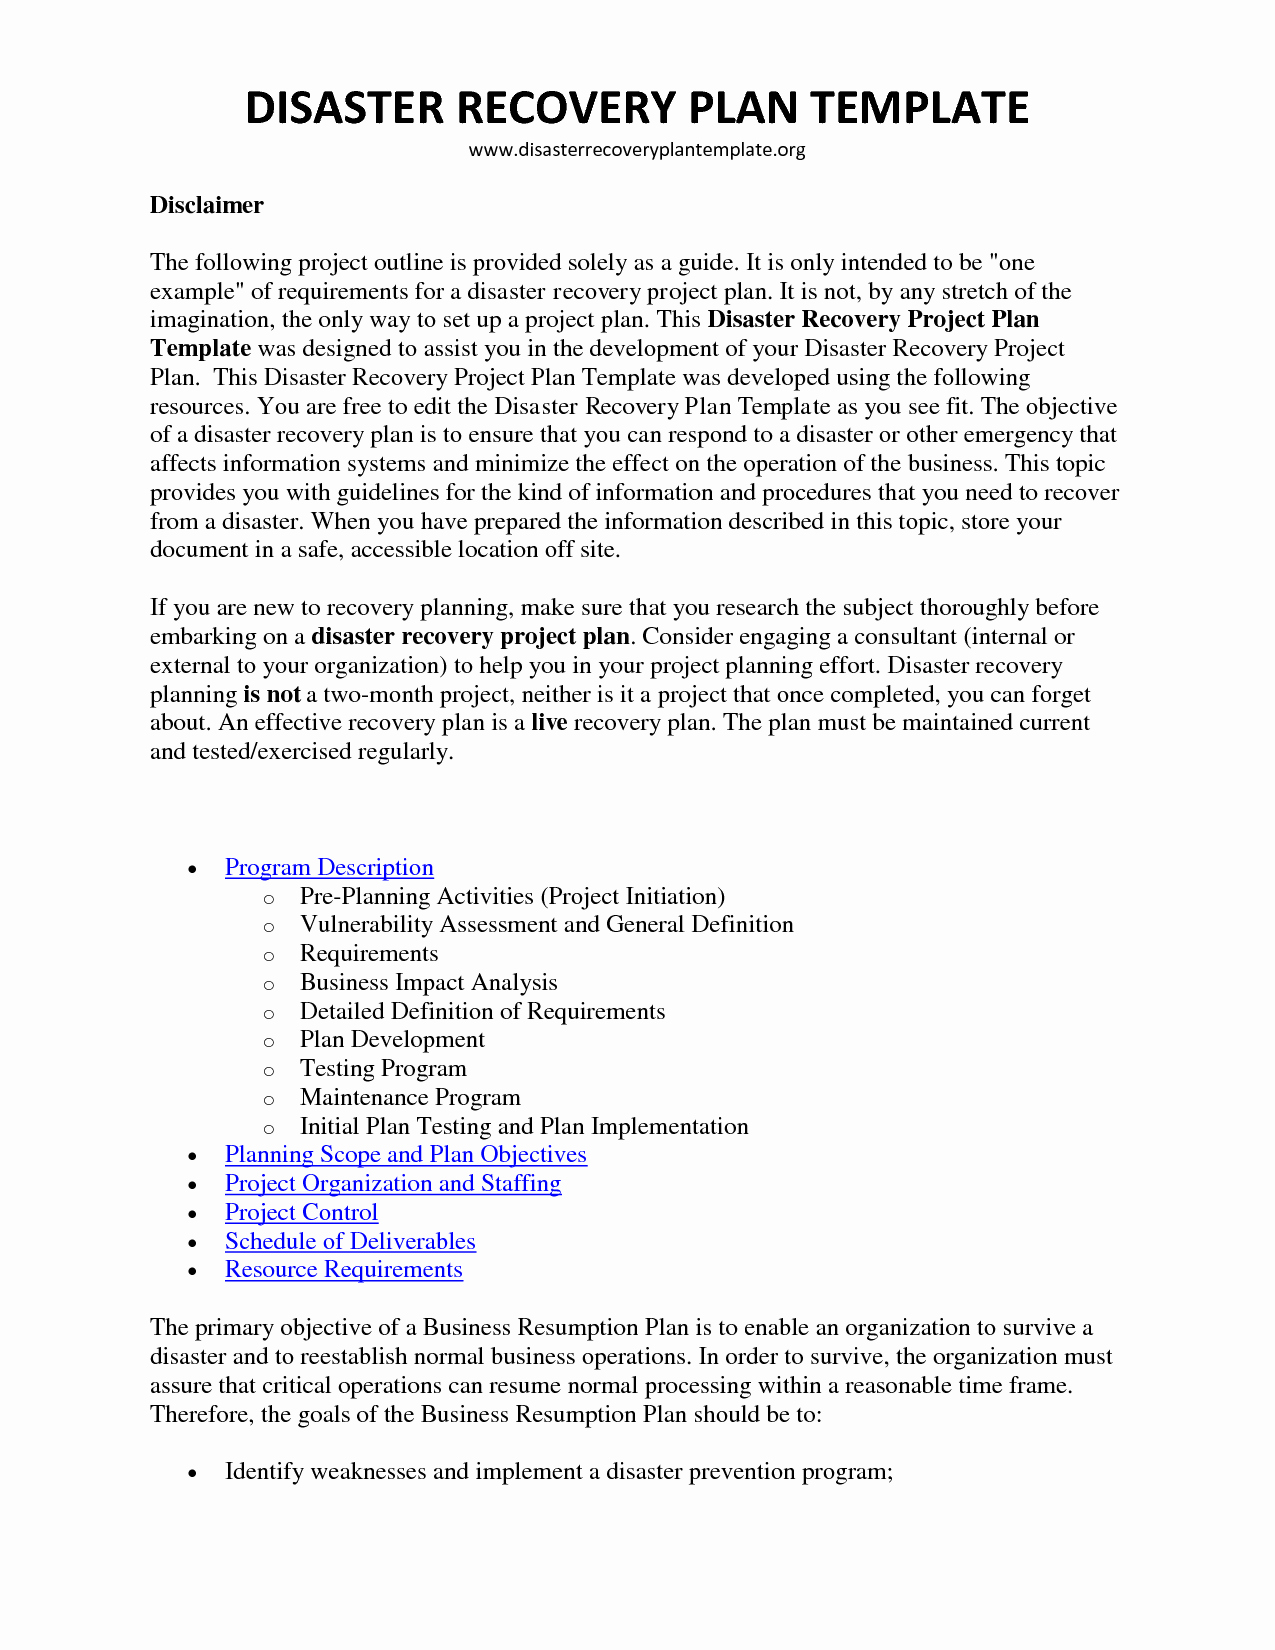 Business Disaster Recovery Plan Template Fresh Disaster Recovery Plan Template